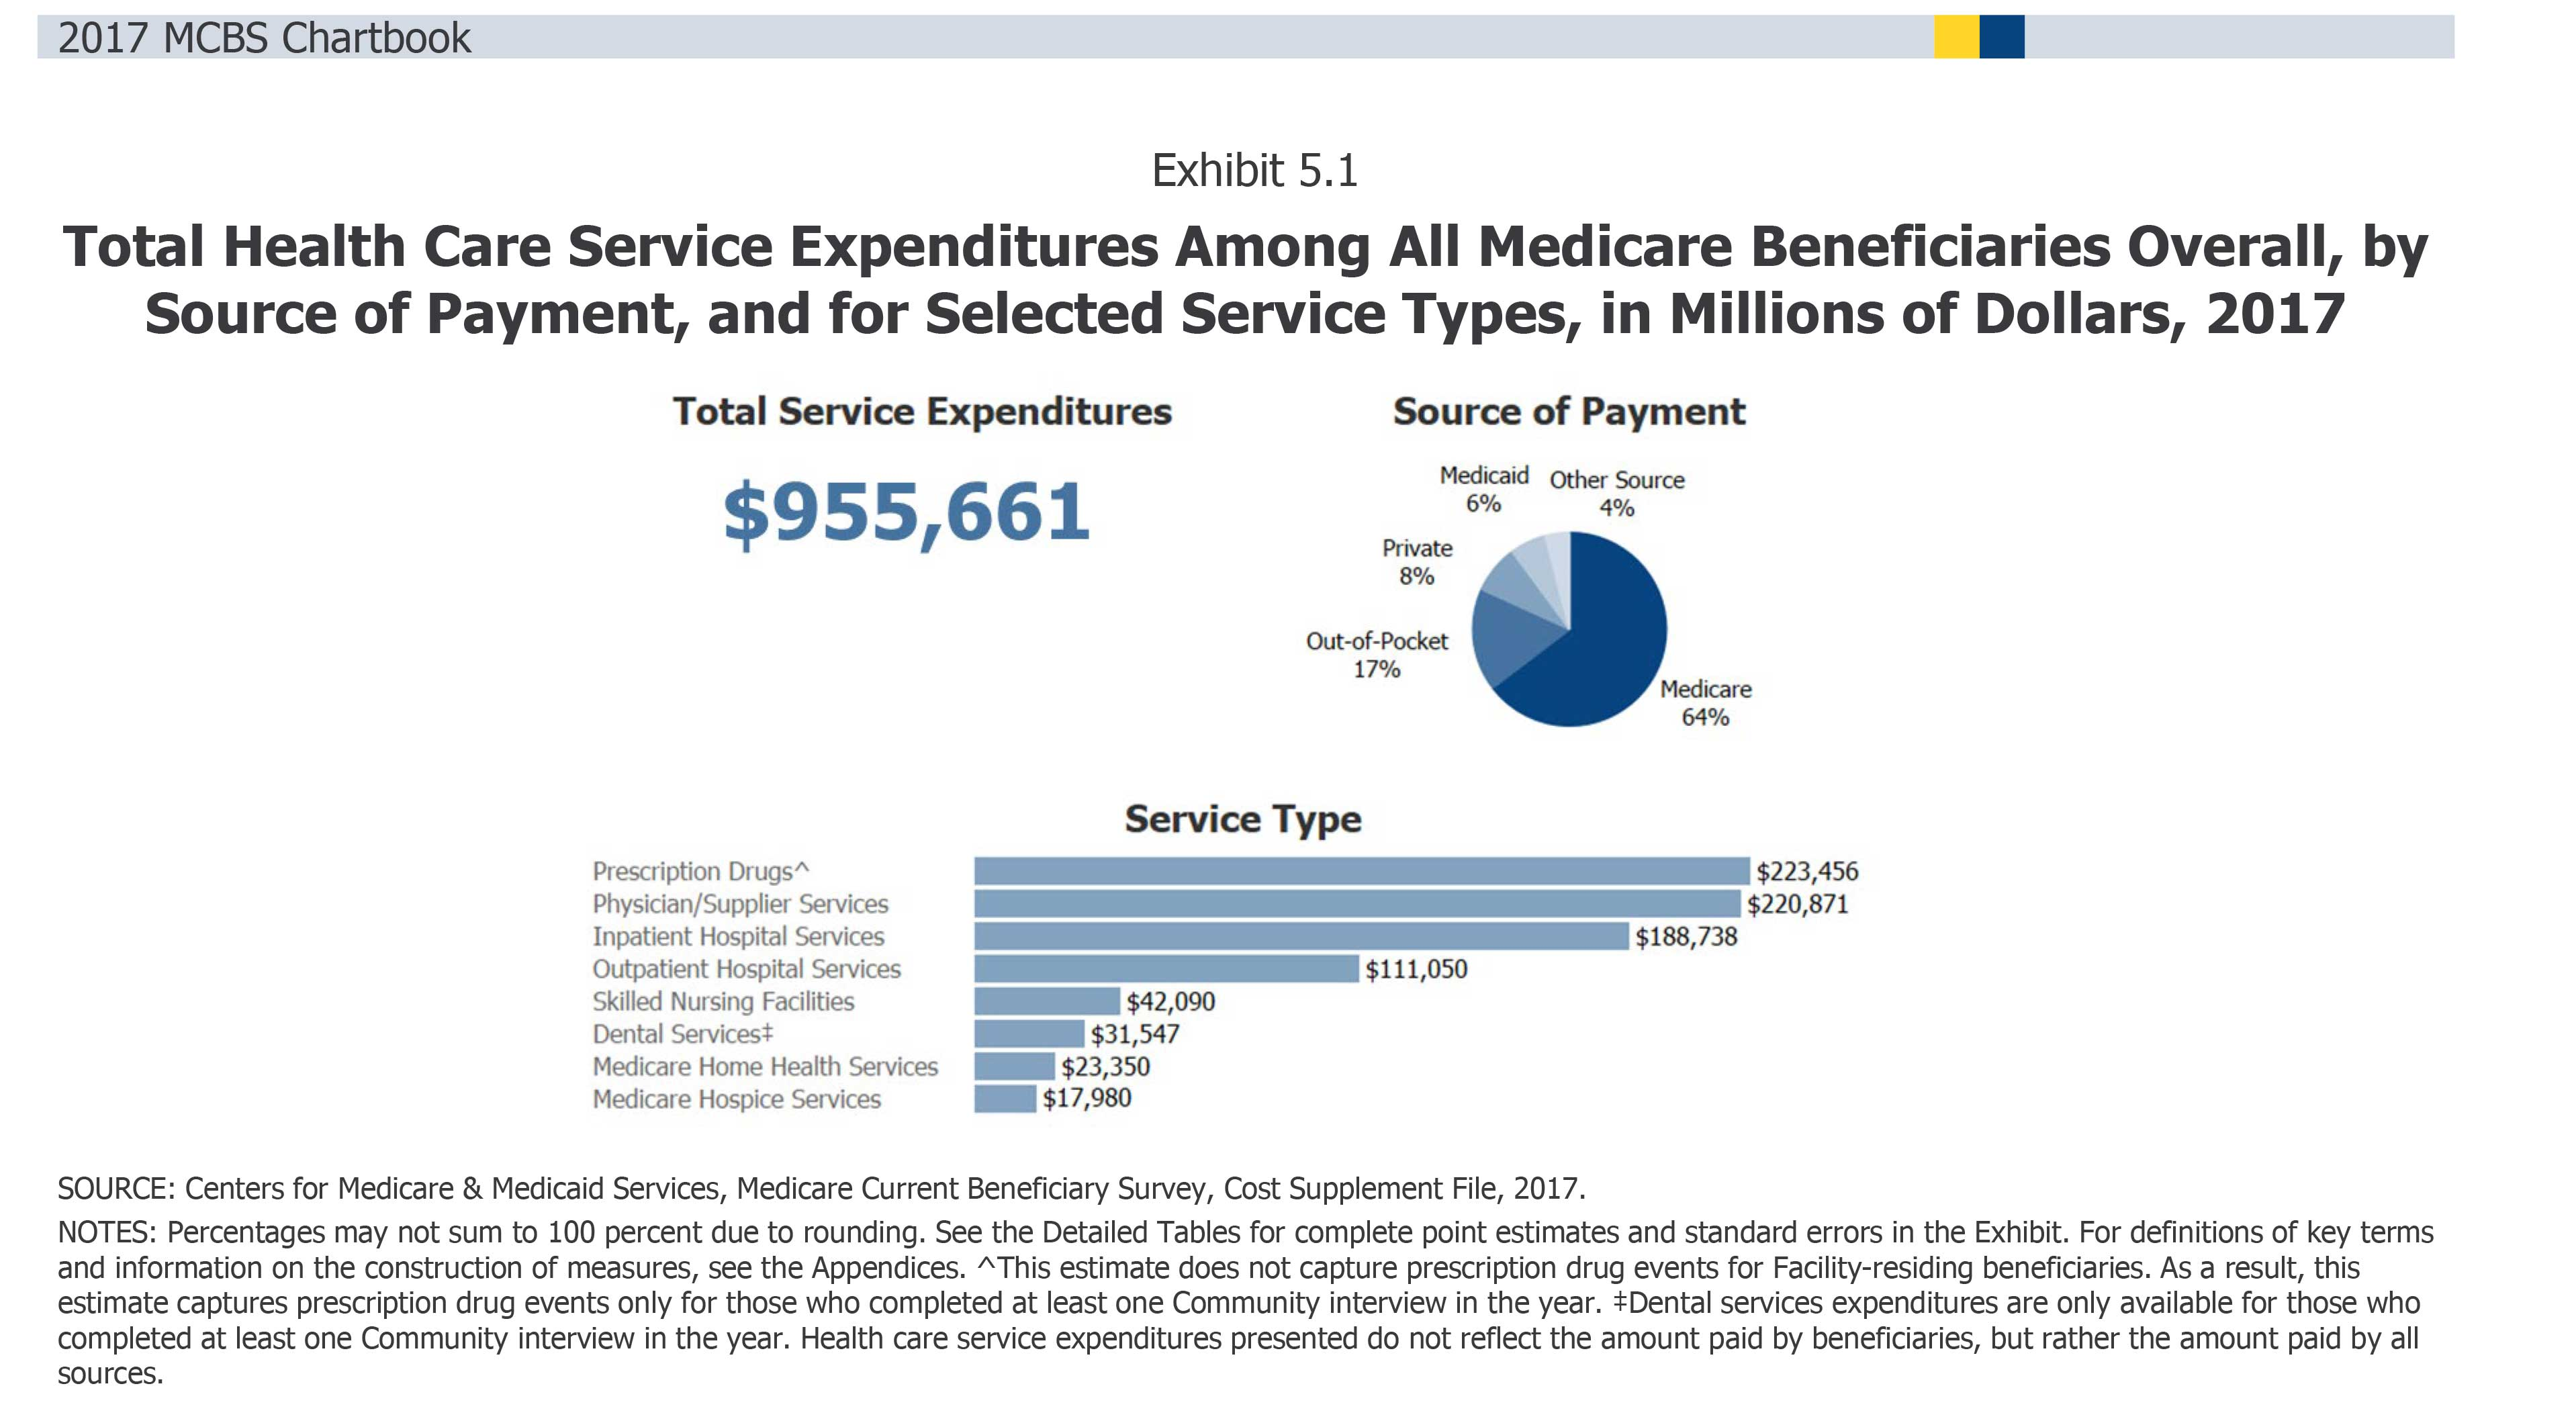 Total Health Care Service Expenditures Among All Medicare Beneficiaries Overall